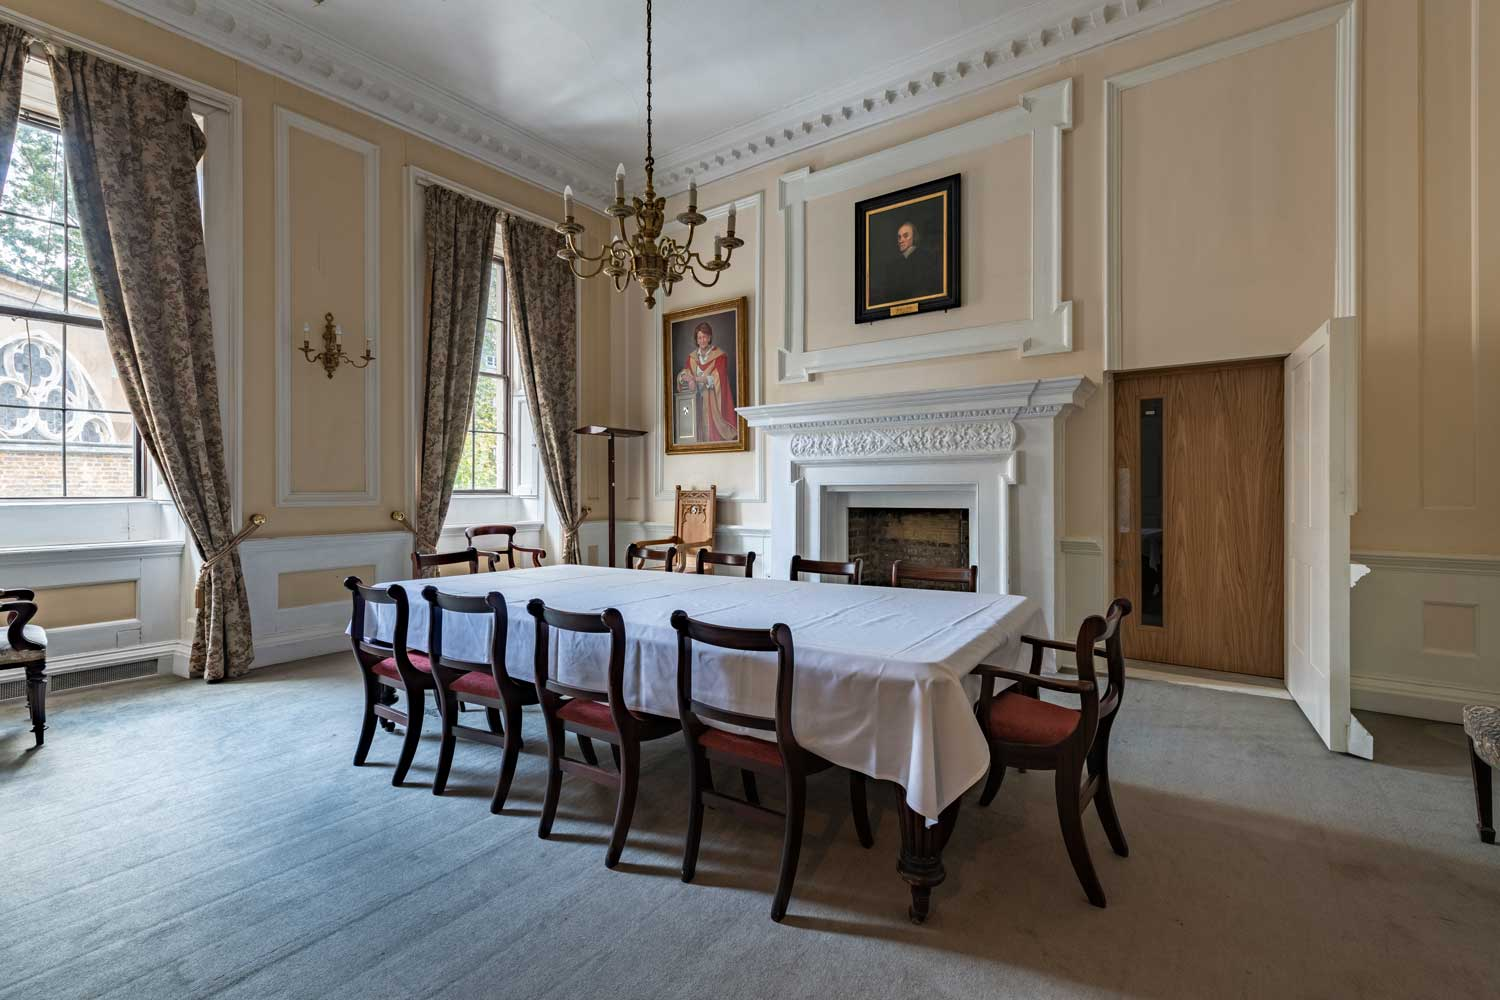 The Treasurer's Room in the North Wing